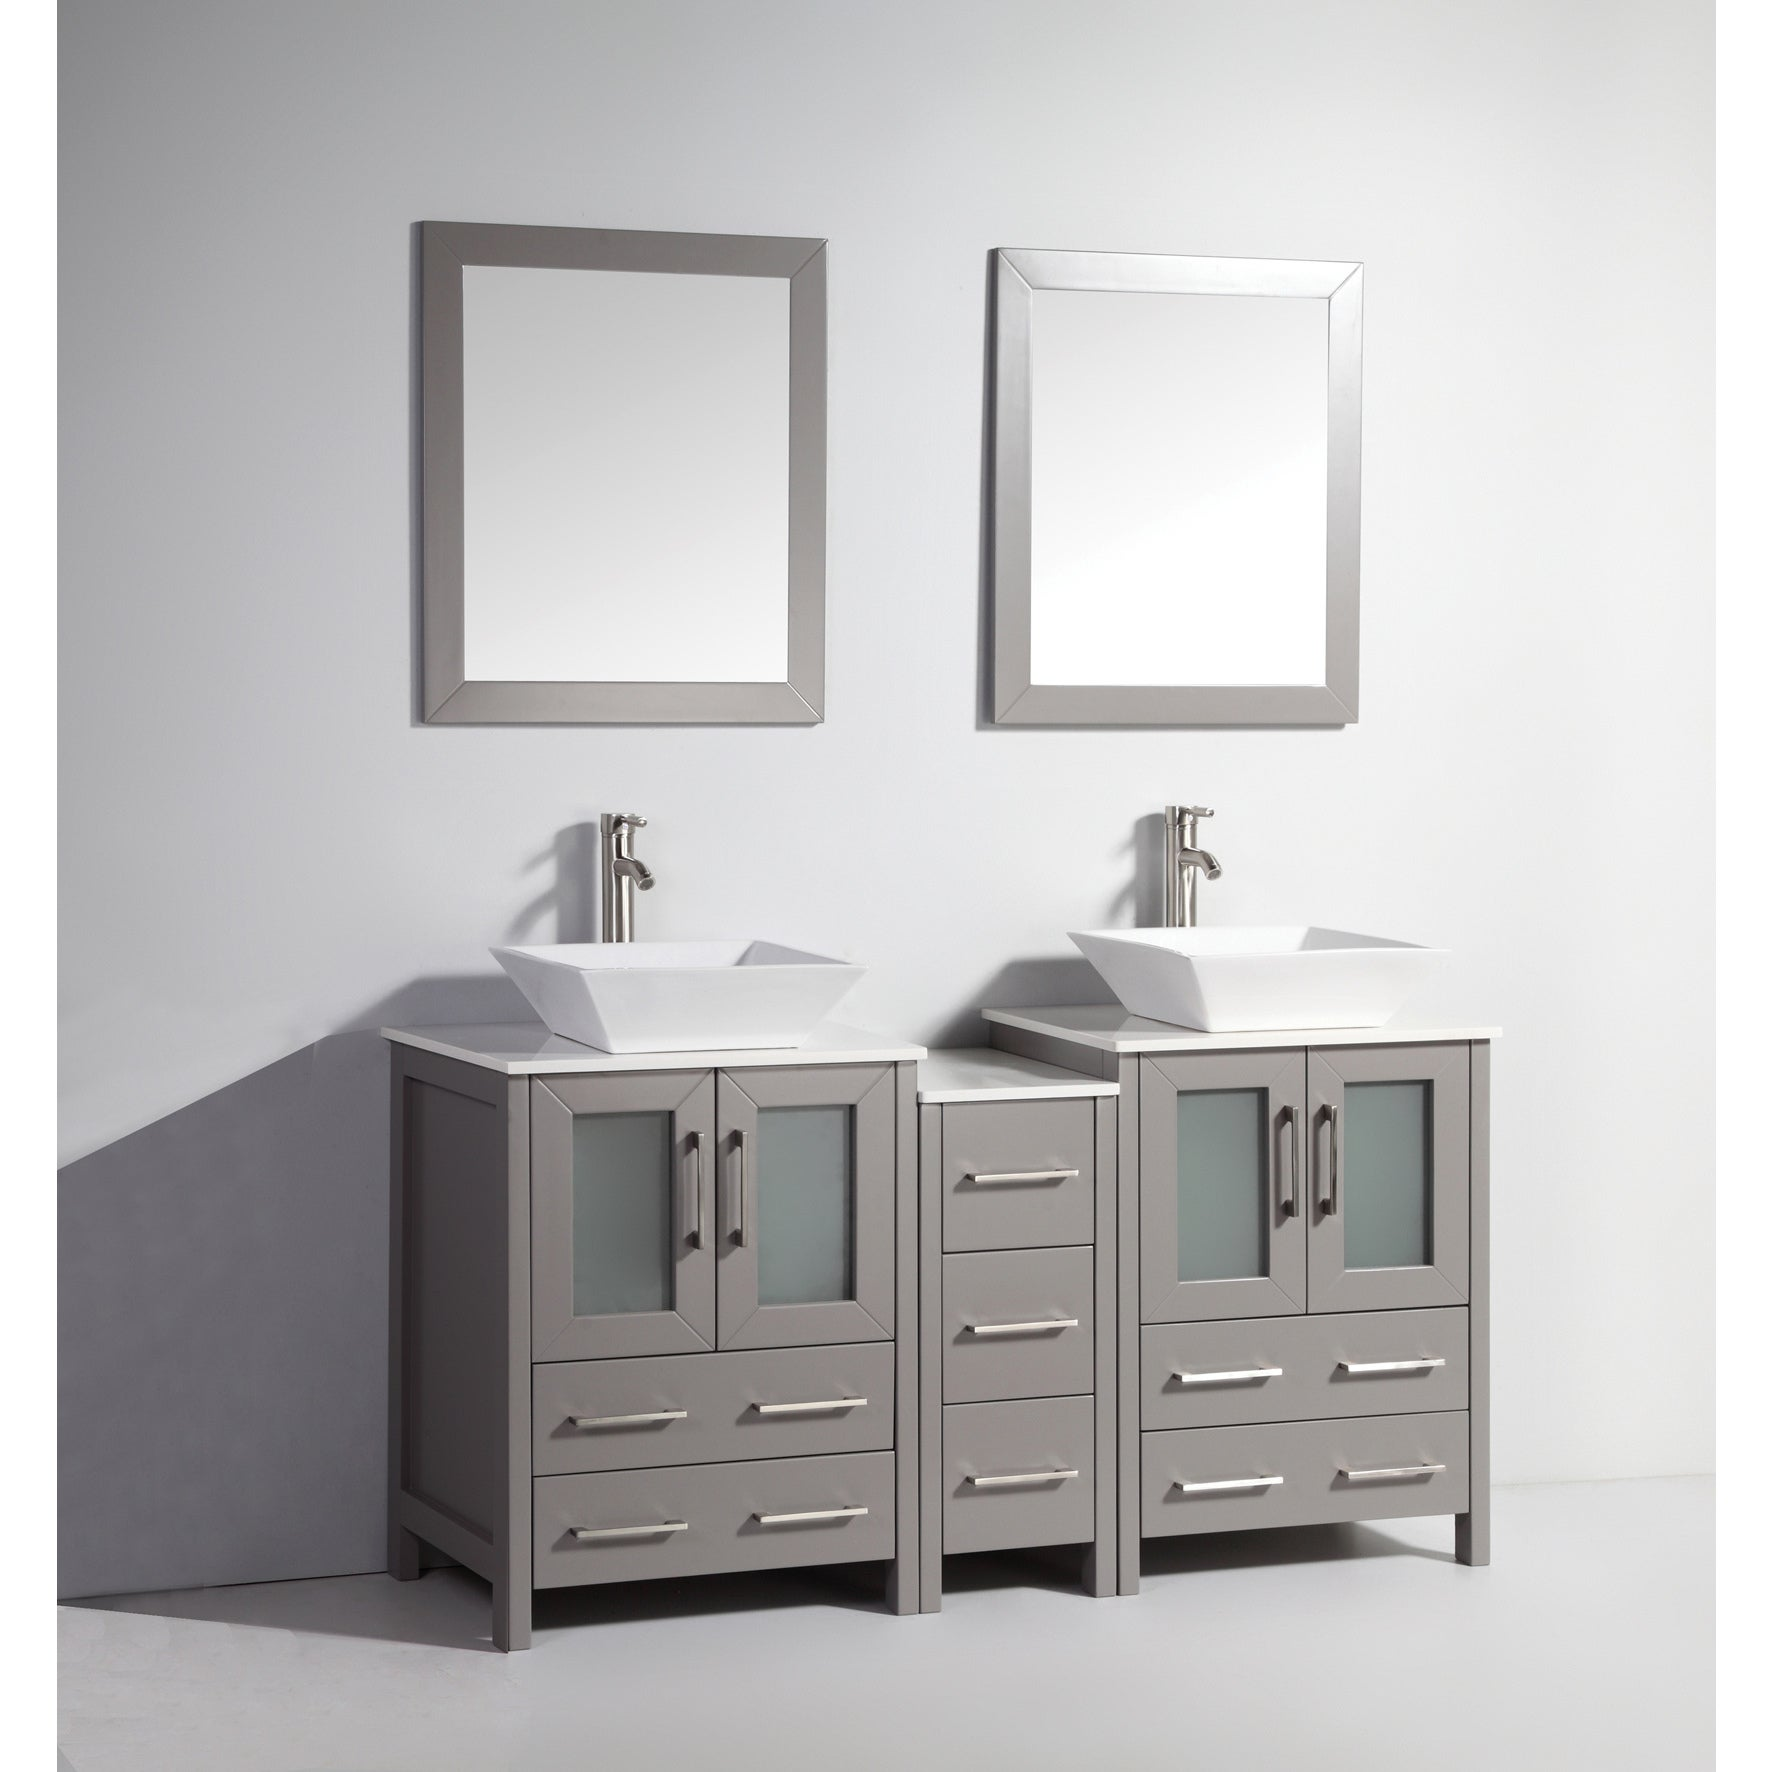 Vanity Art 60 Inch Double Sink Bathroom Vanity